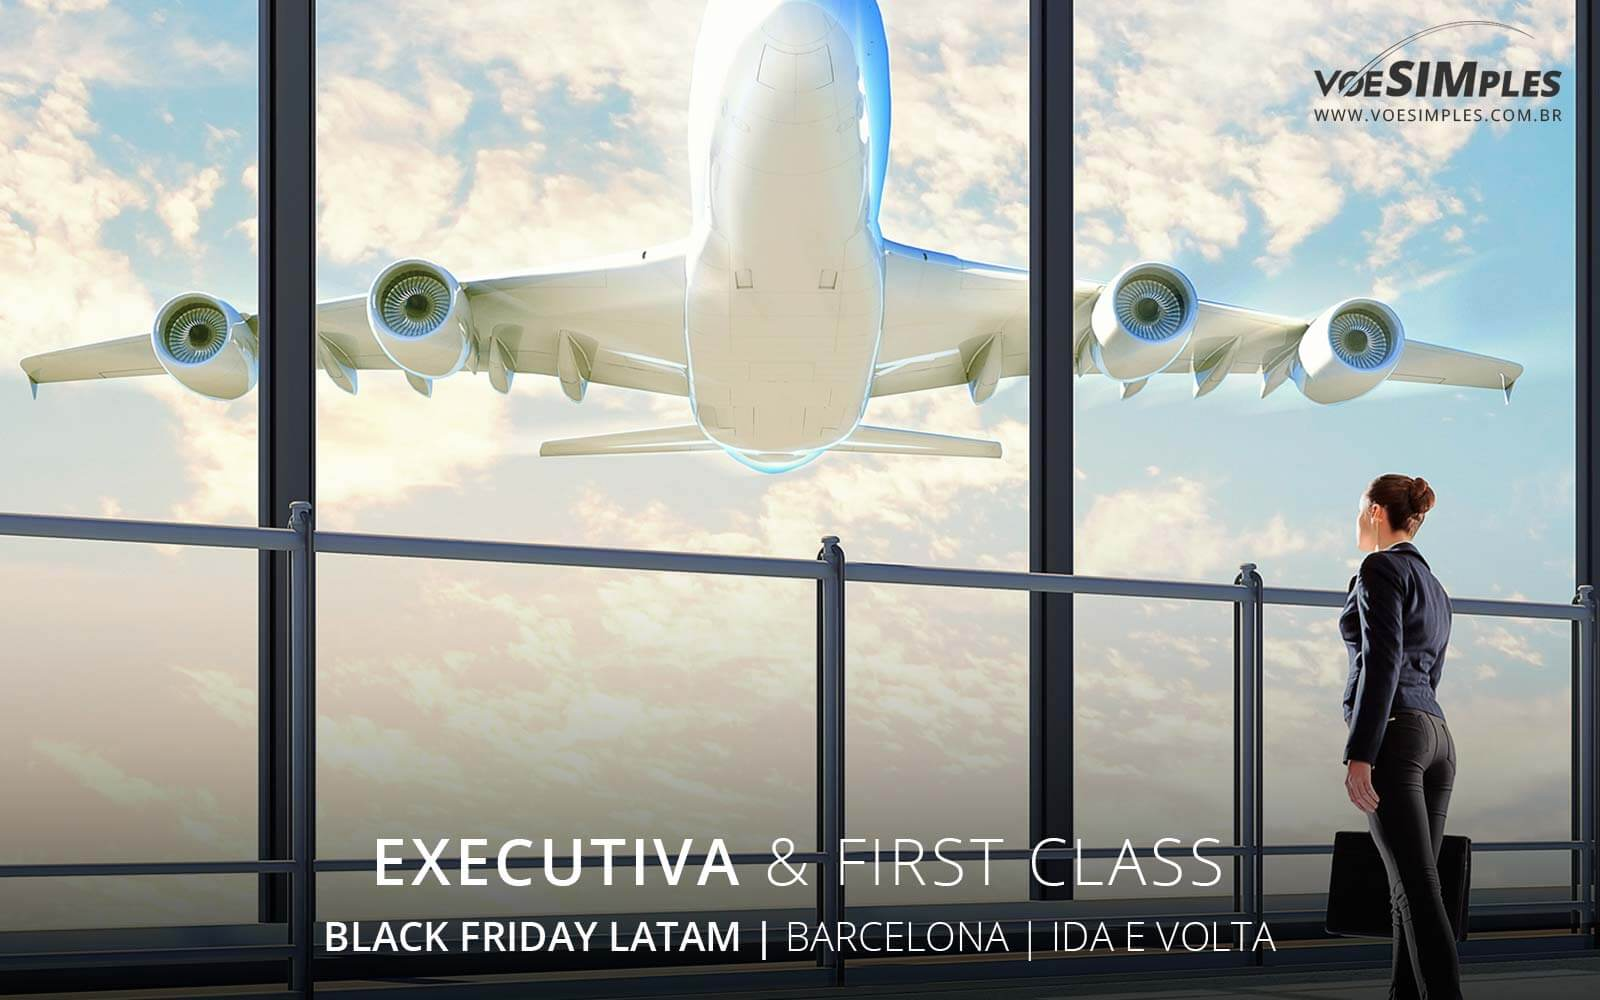 Passagem aérea Executiva Latam Black Friday